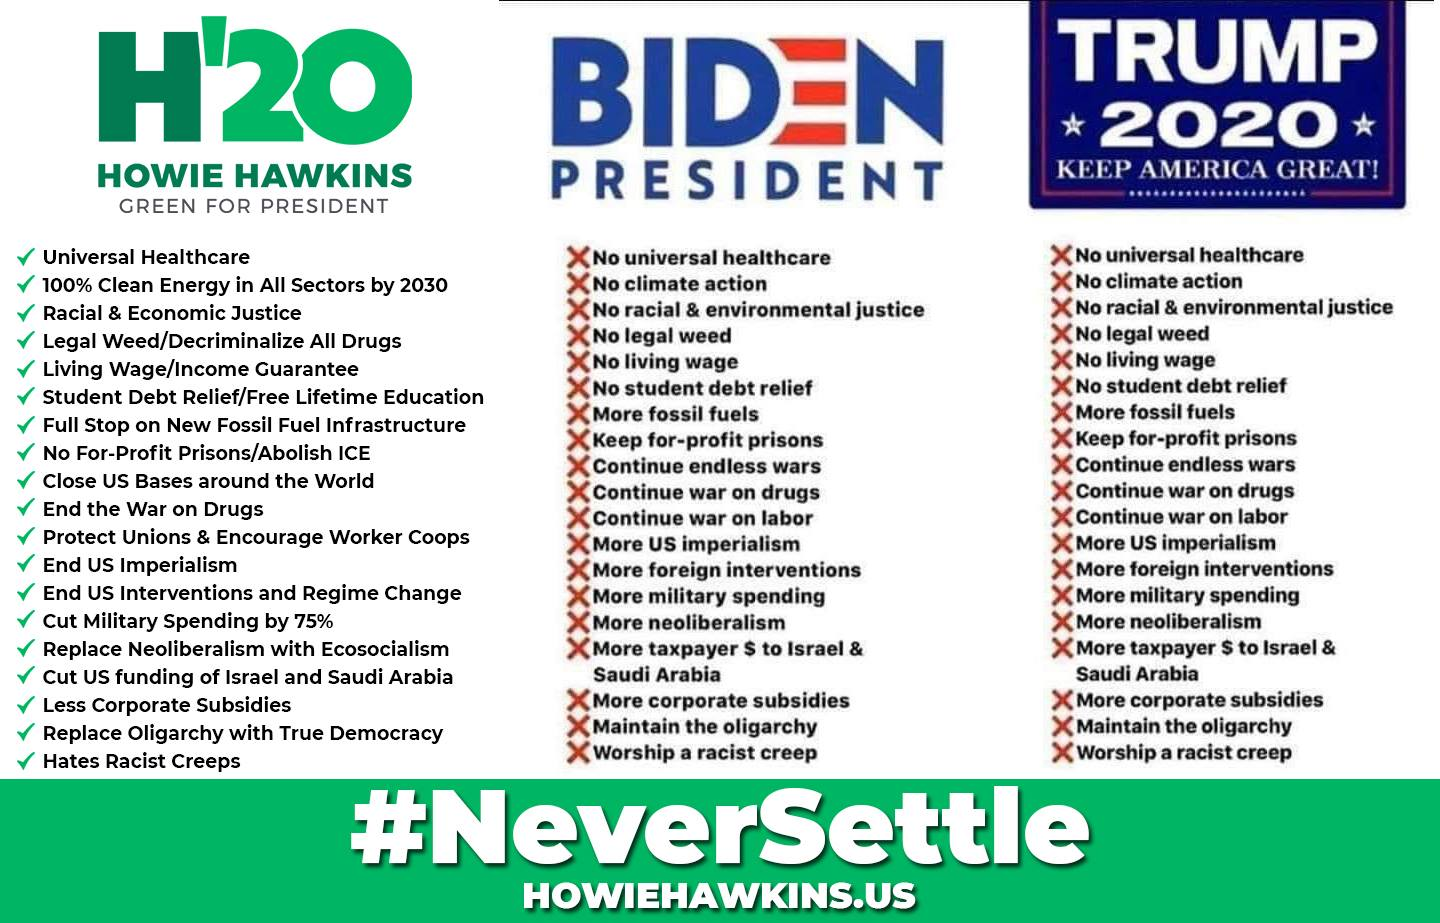 A chart comparing Howie Hawkins, Joe Biden, & Donald Trump